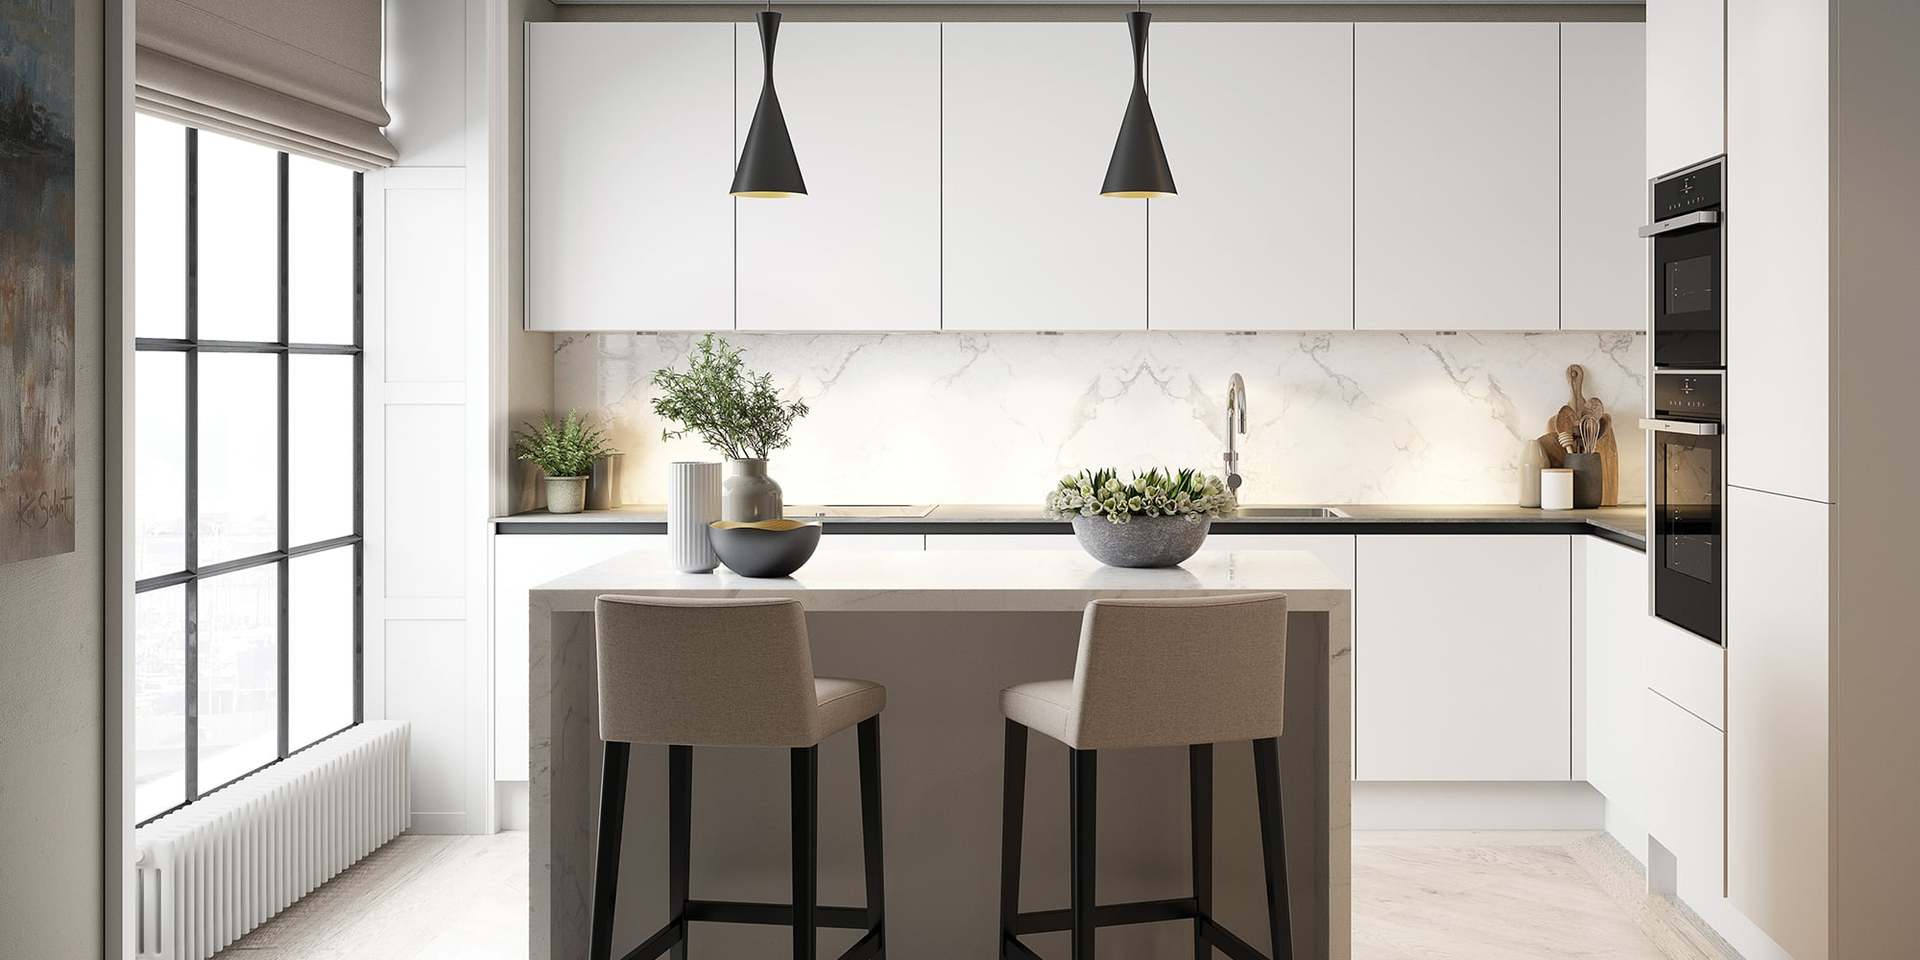 Kitchens Bathrooms And Bedrooms Middlesbrough